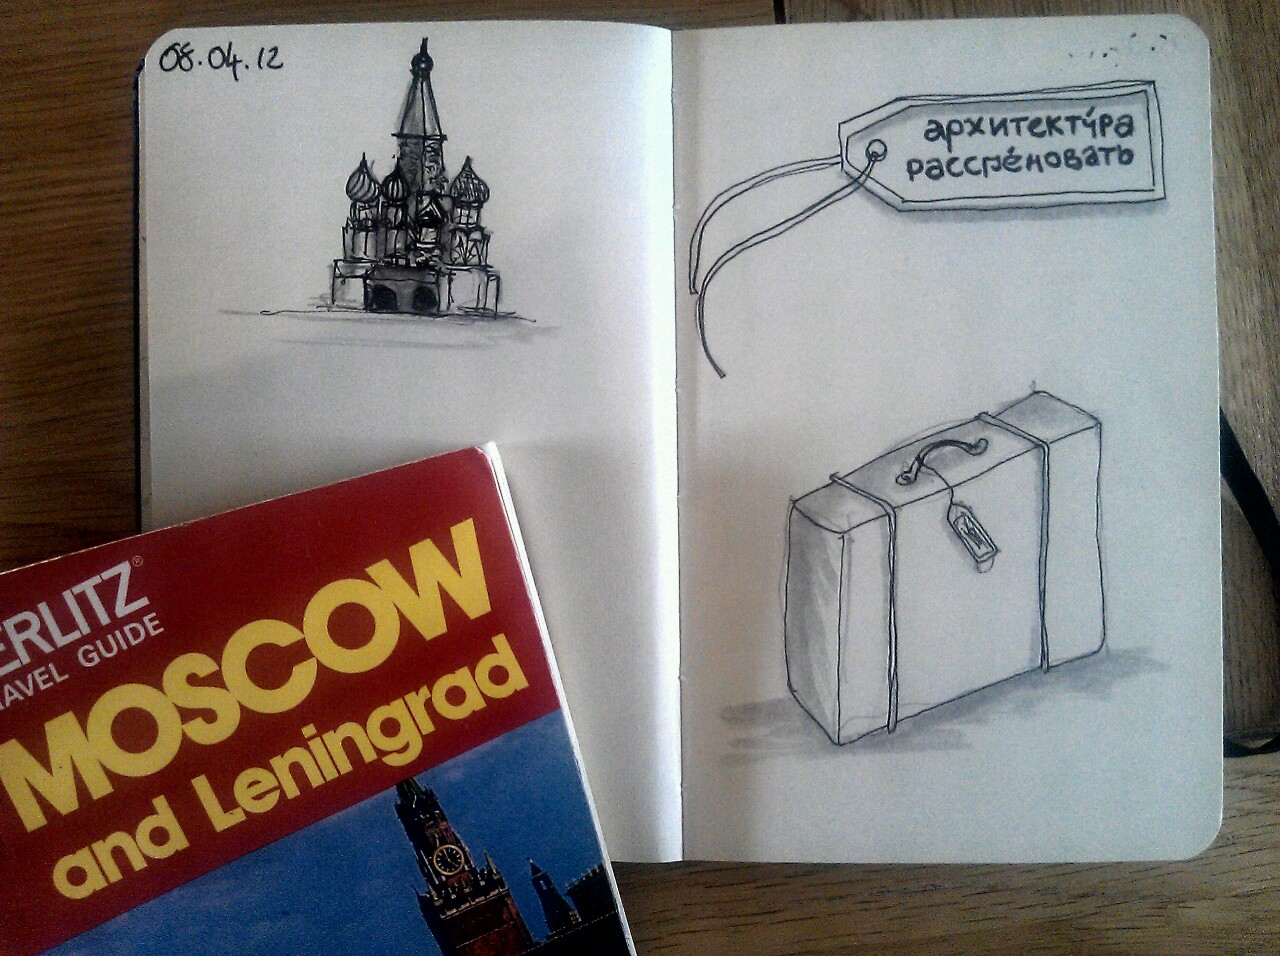 365 drawings later … day 68 … architecture explorer